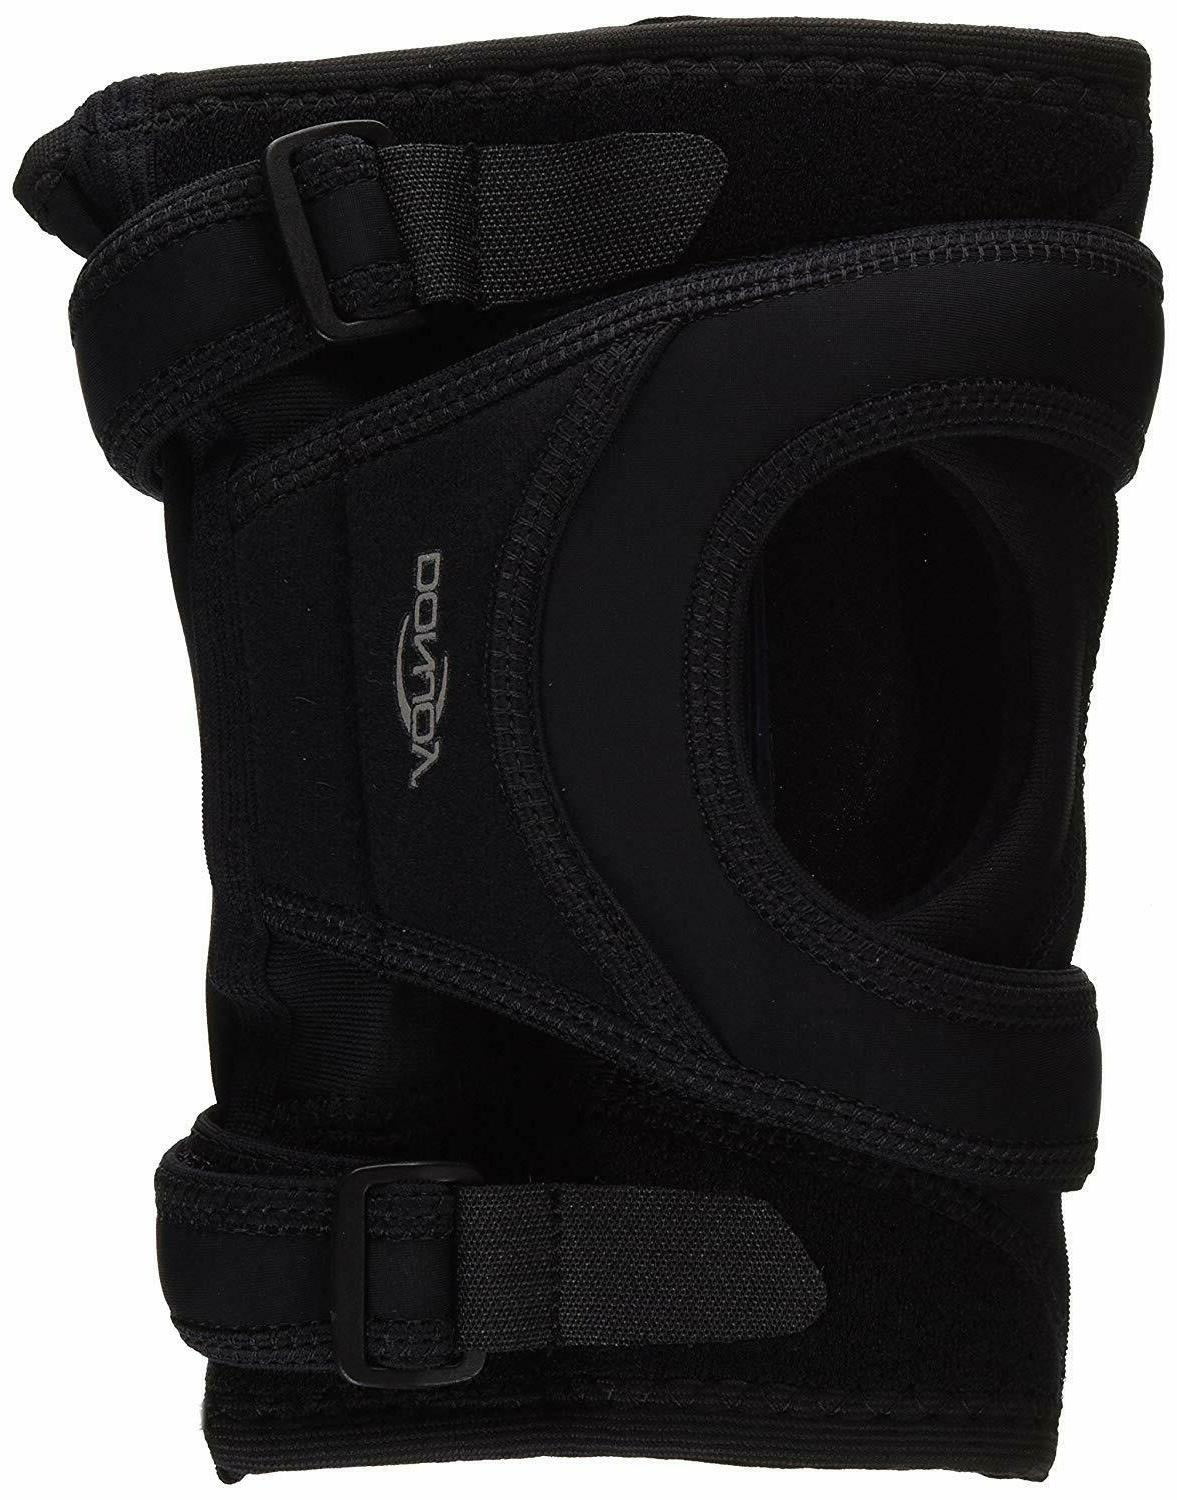 trupull lite knee support brace left leg